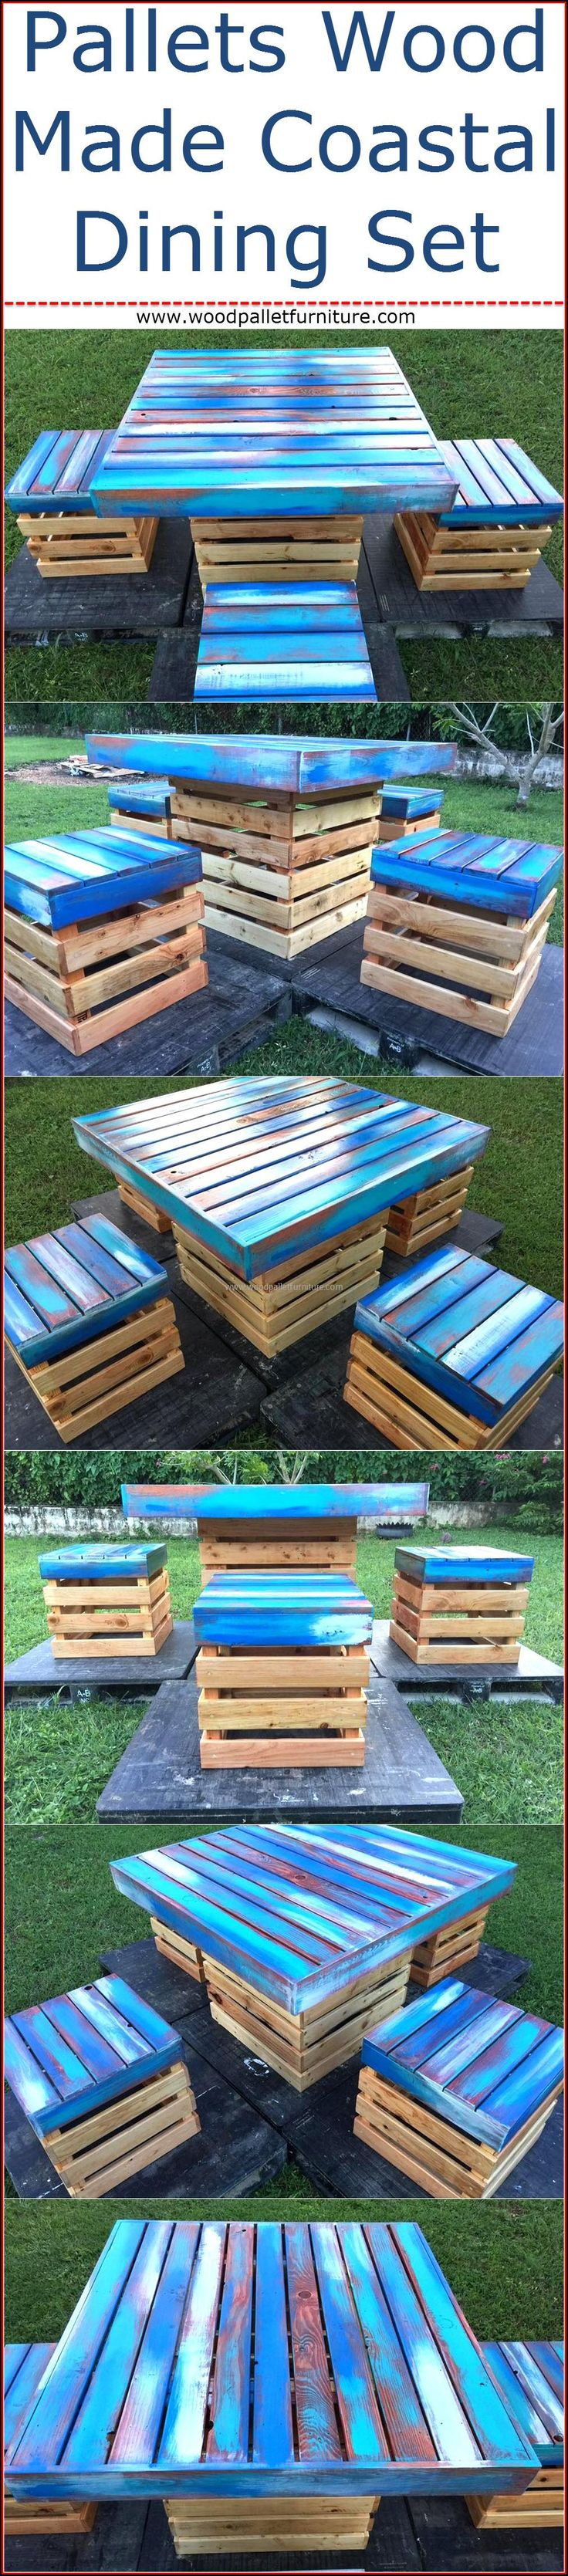 Nothing is better than making the furniture with hand for adorning the home, if you have a lawn in the home; then you should consider making a coastal dining set which will look outstanding in the garden. Placing a handmade coastal dining set made up of repurposed wood pallets adds to the grace of the lawn and enhances the entrance of the home if the lawn is at the entrance and a guest has to walk through it to enter the home. Blue paint is used for making the set appear attractive.